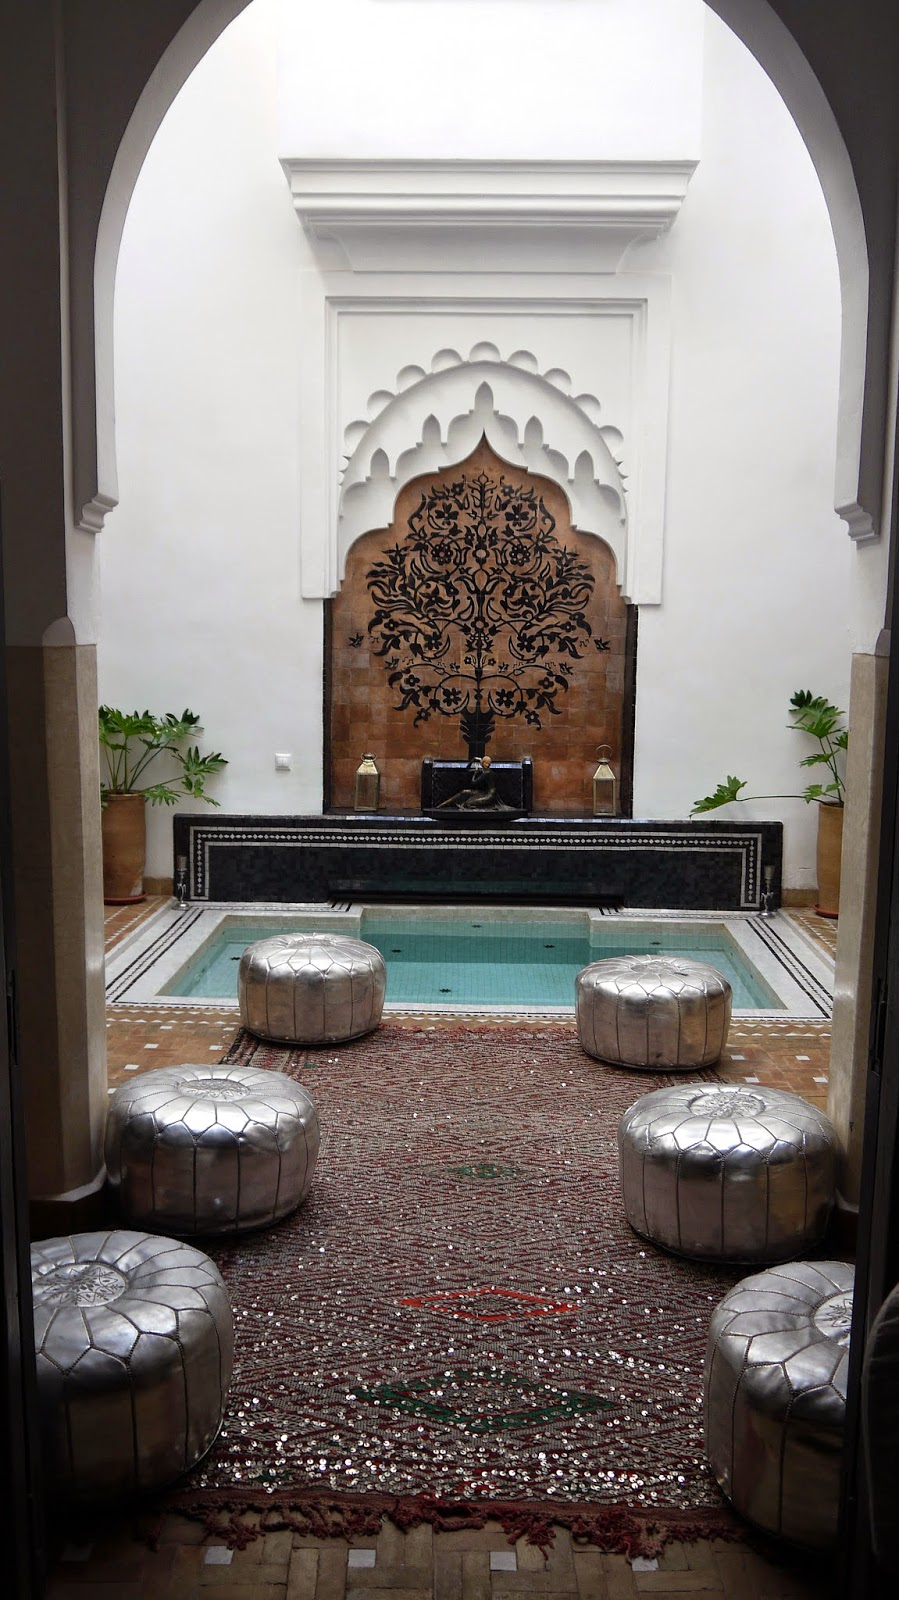 Riad Star: A Charming, Intimate Oasis in Marrakech